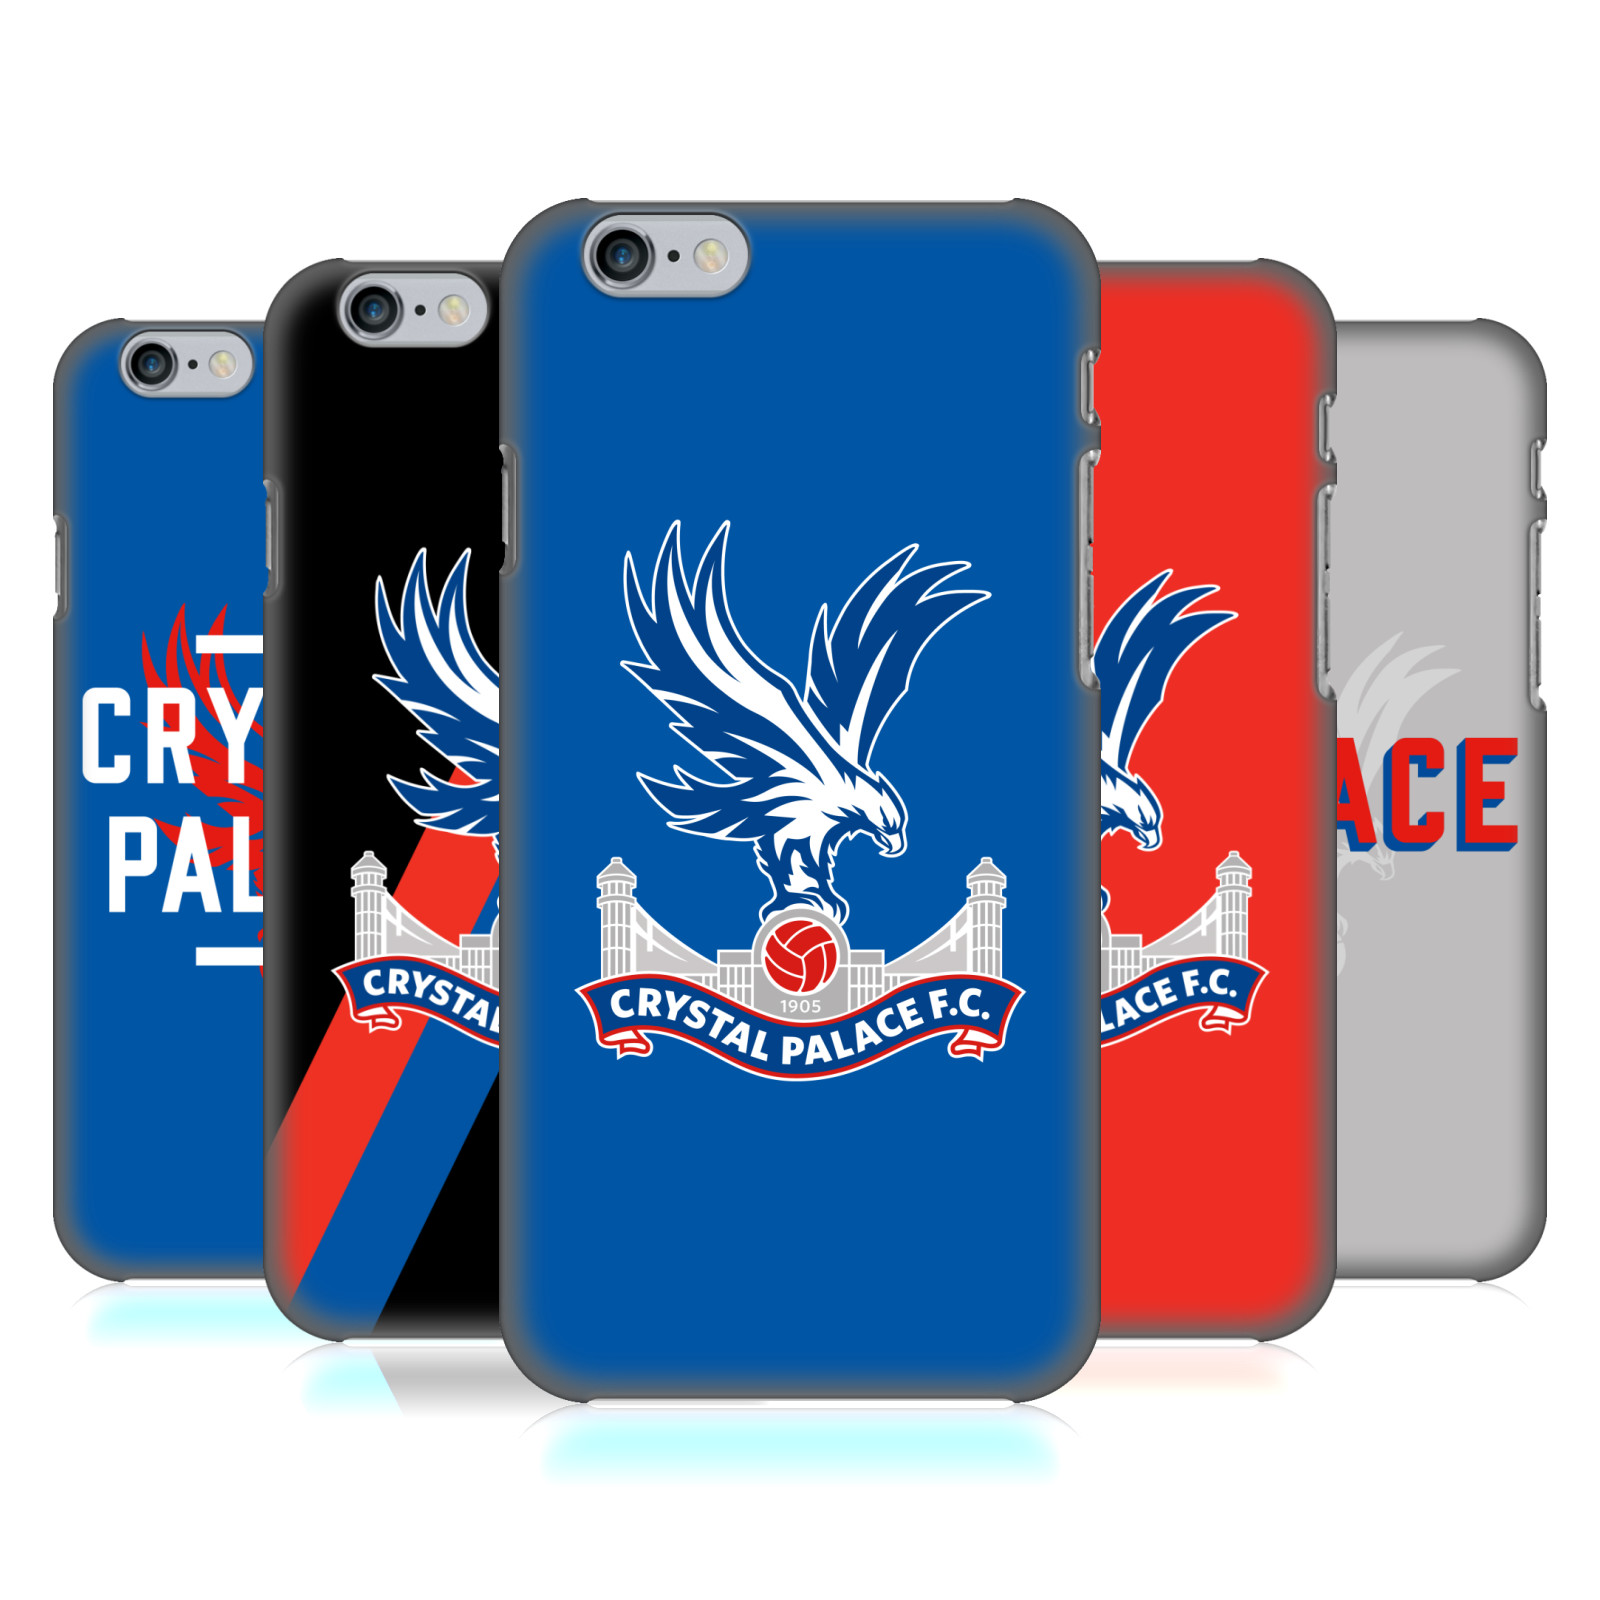 Crystal Palace FC CPFC Phone and Tablet cases